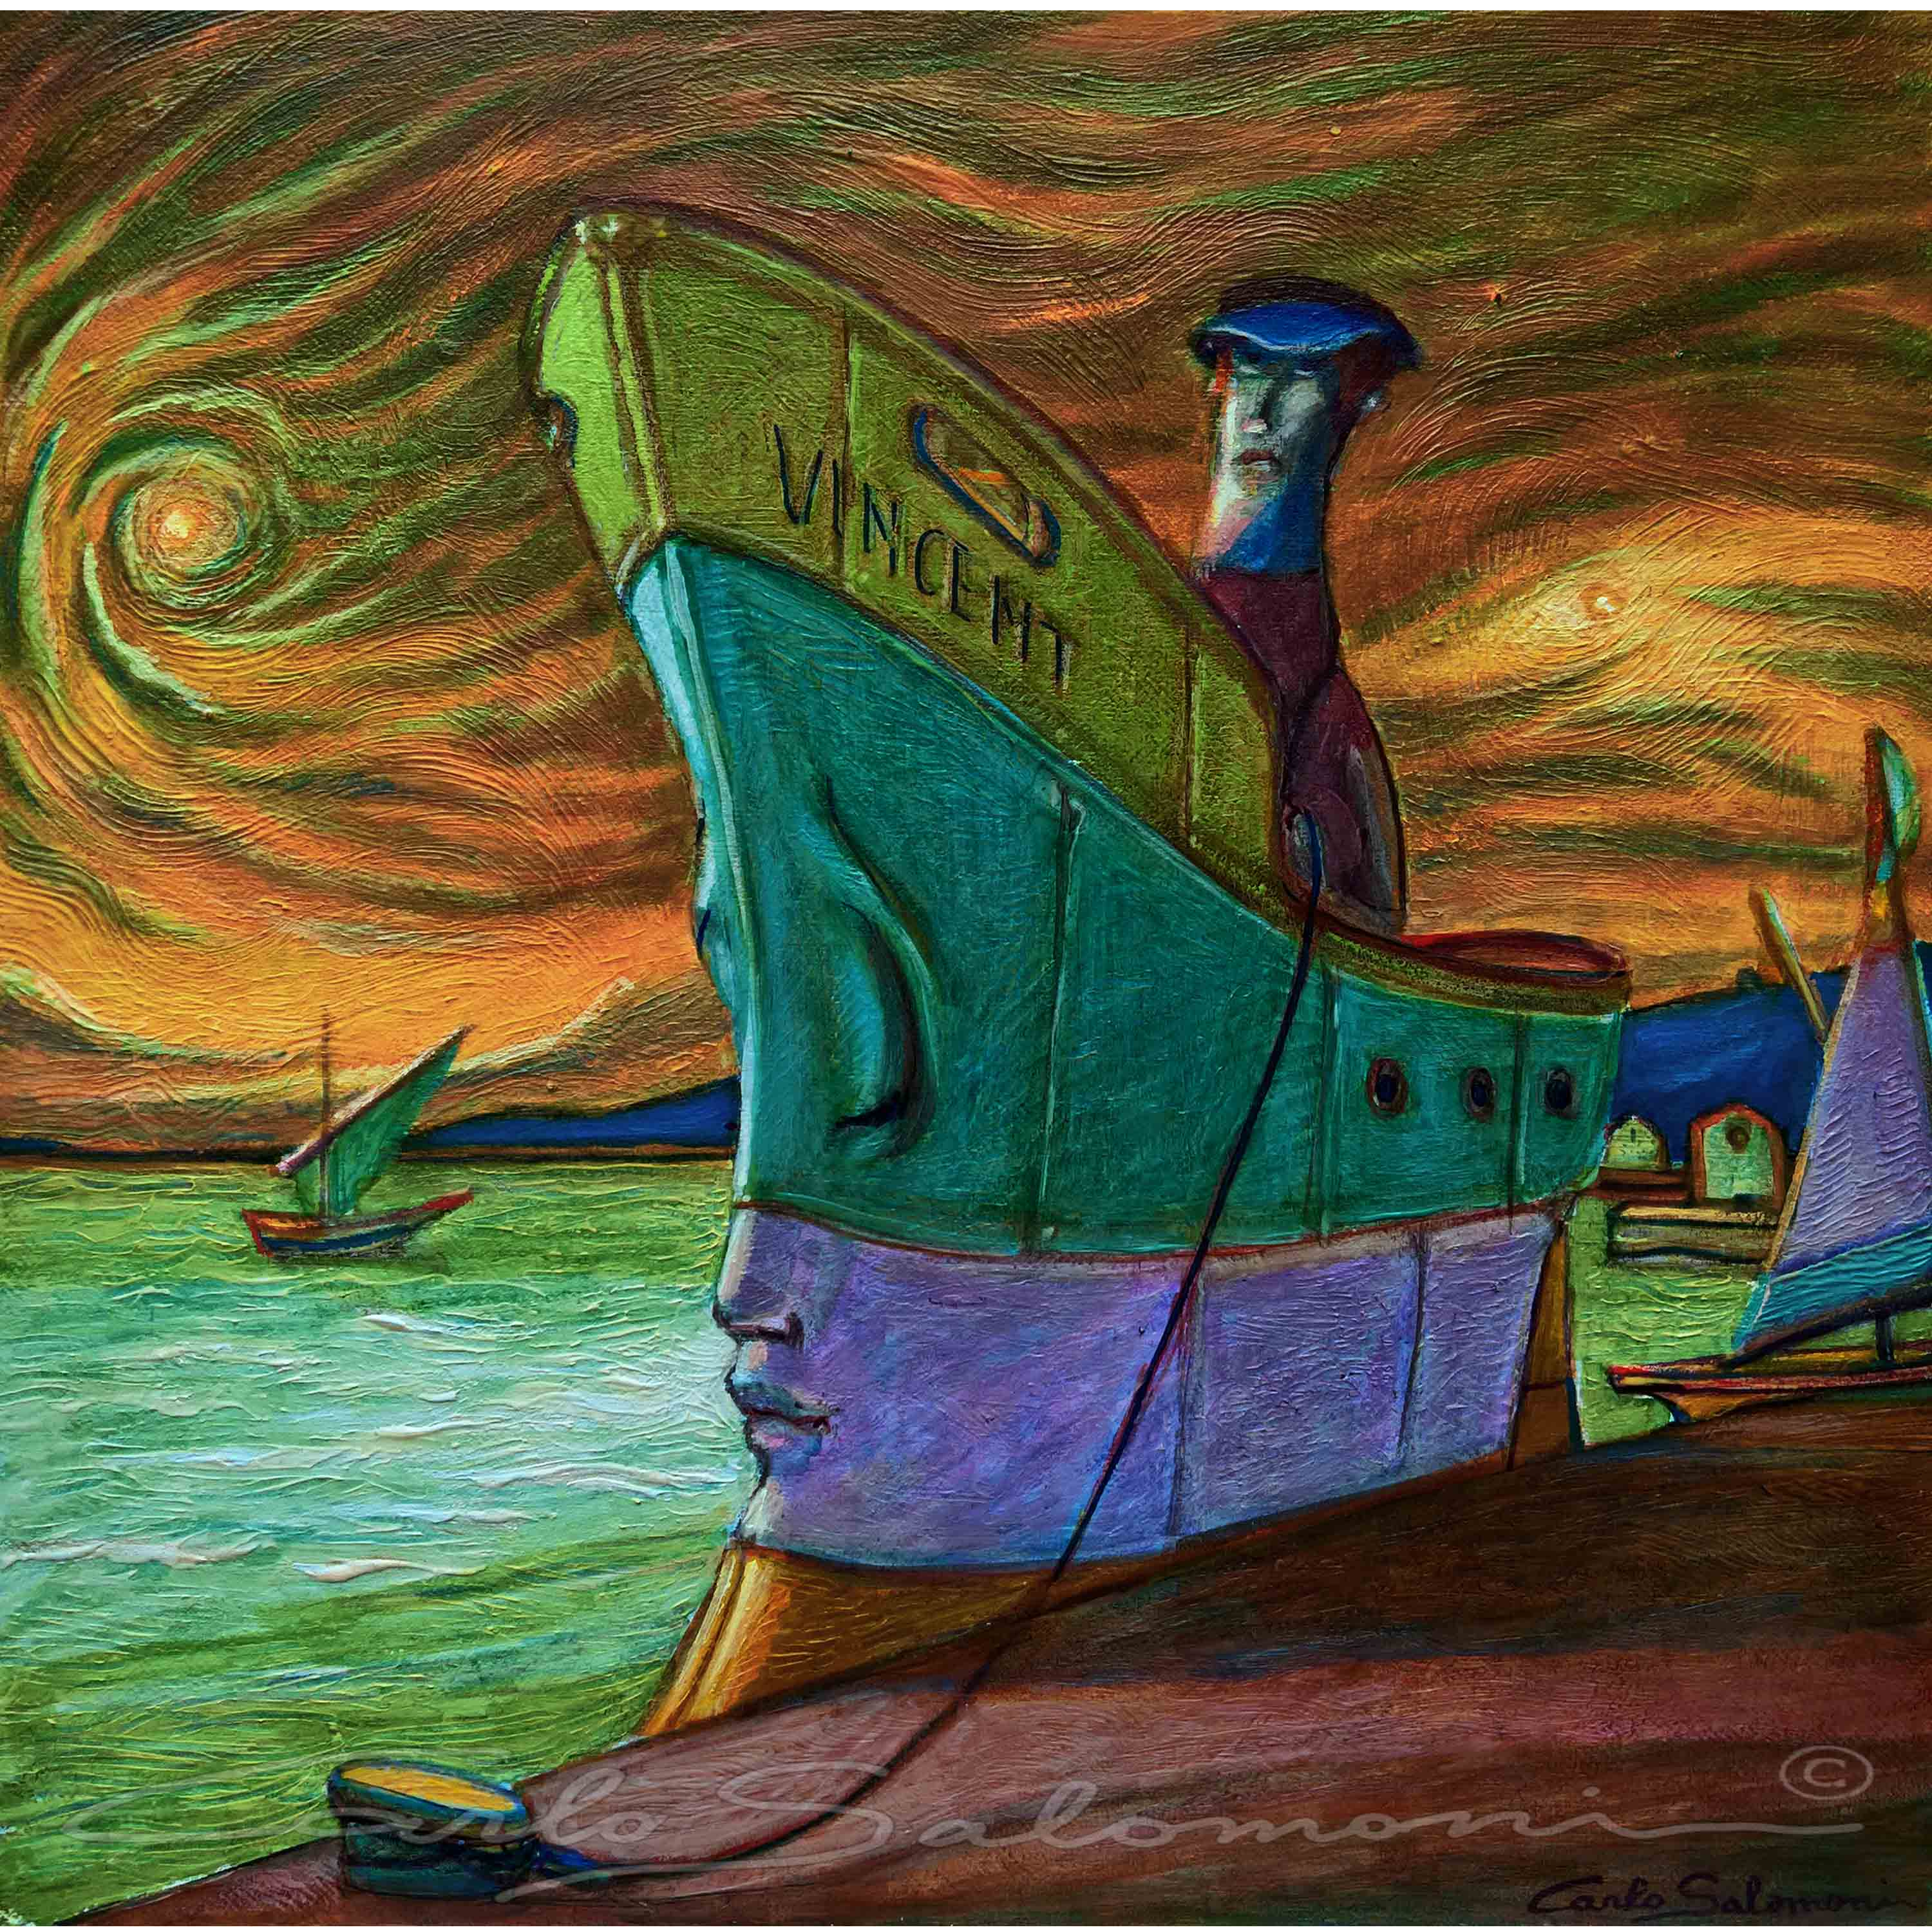 VINCENT, THE SHIP OF DREAMS